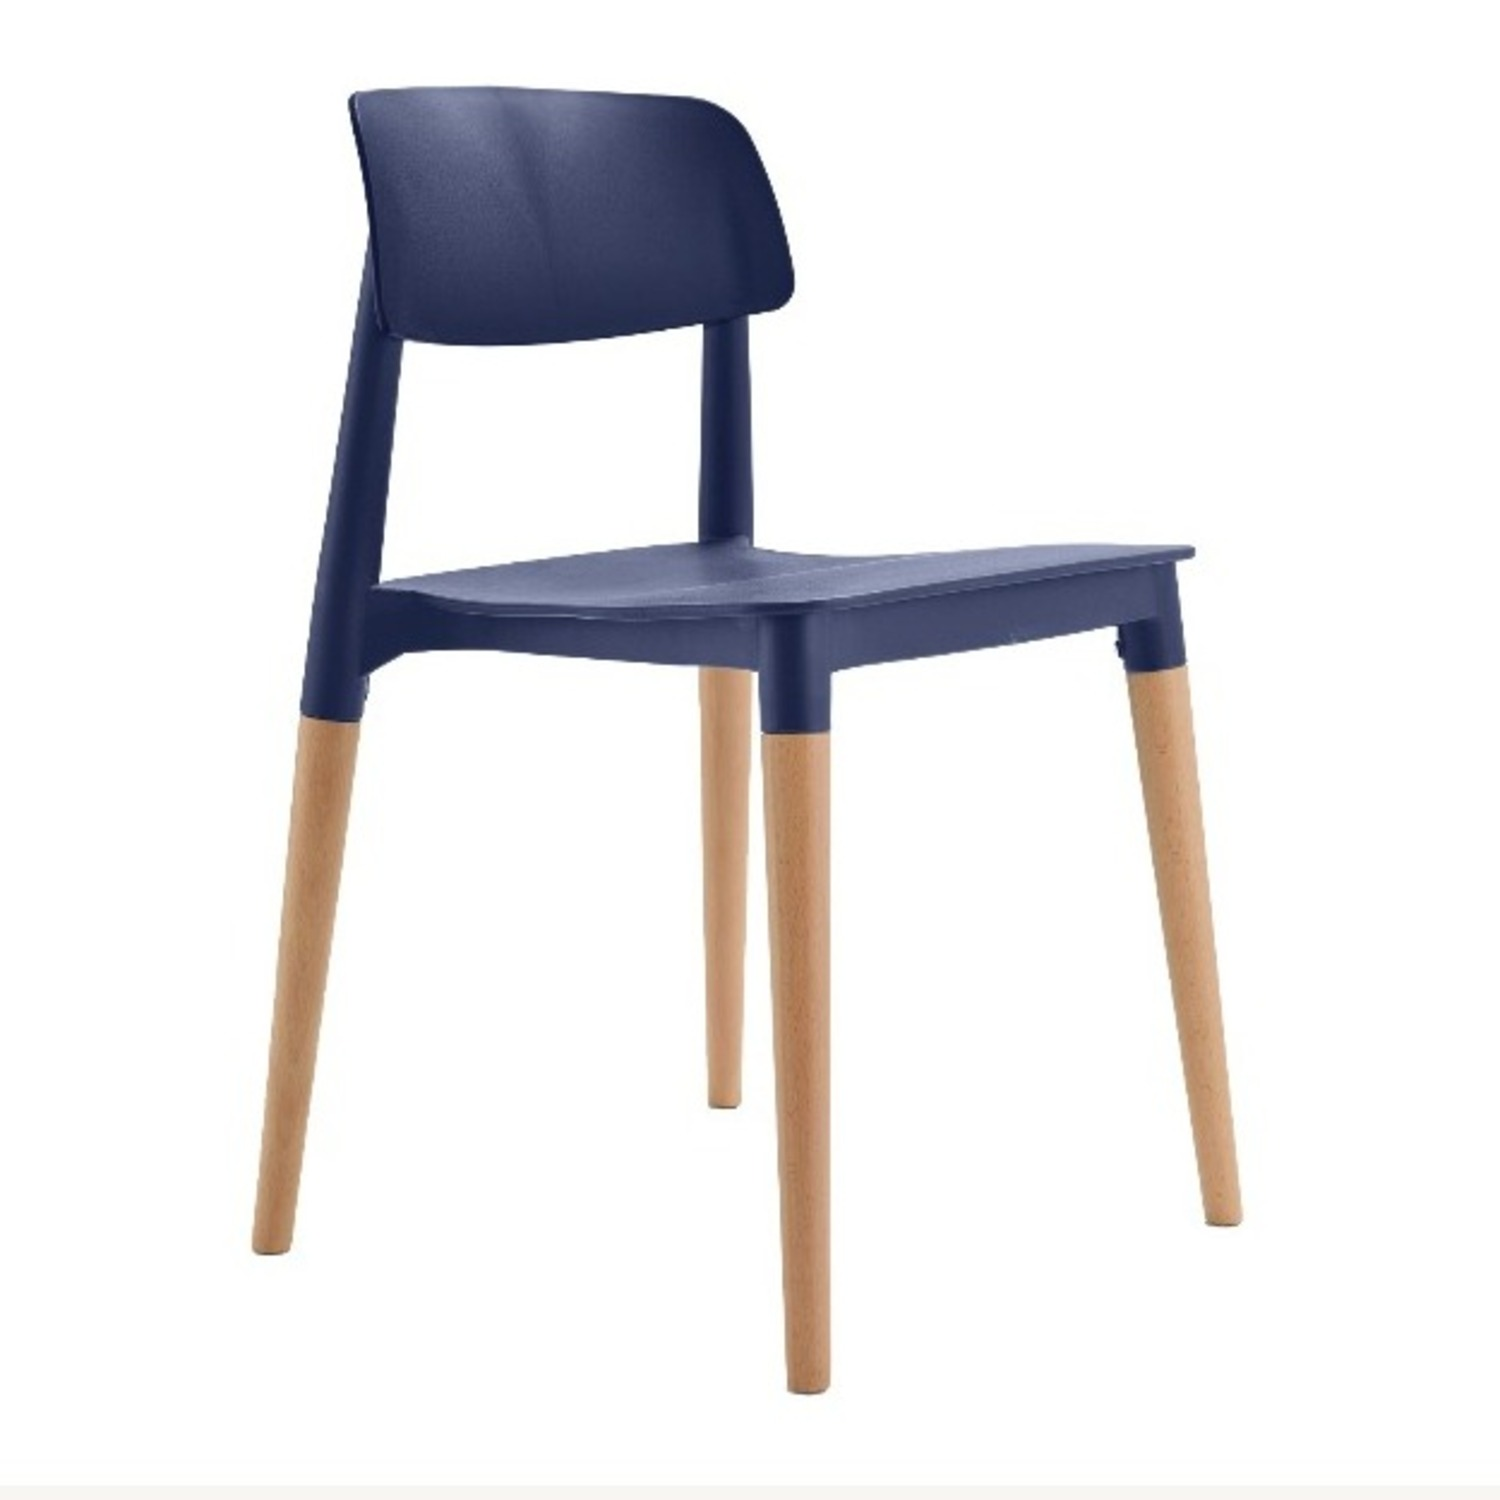 Navy Blue and Natural Wood Chairs - image-1